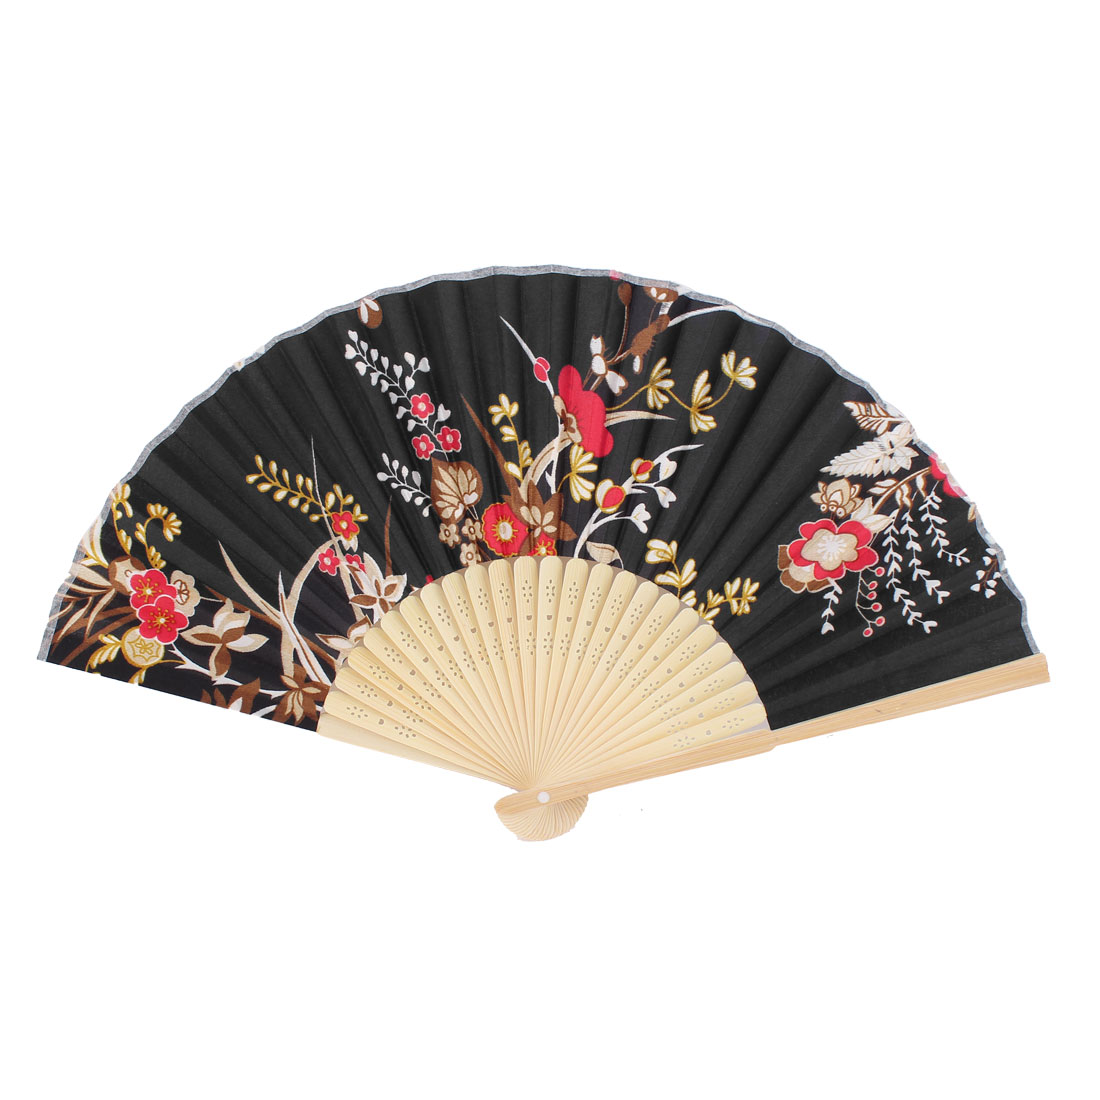 Houseware Hollow Out Ribs Red Floral Pattern Folding Hand Fan Black